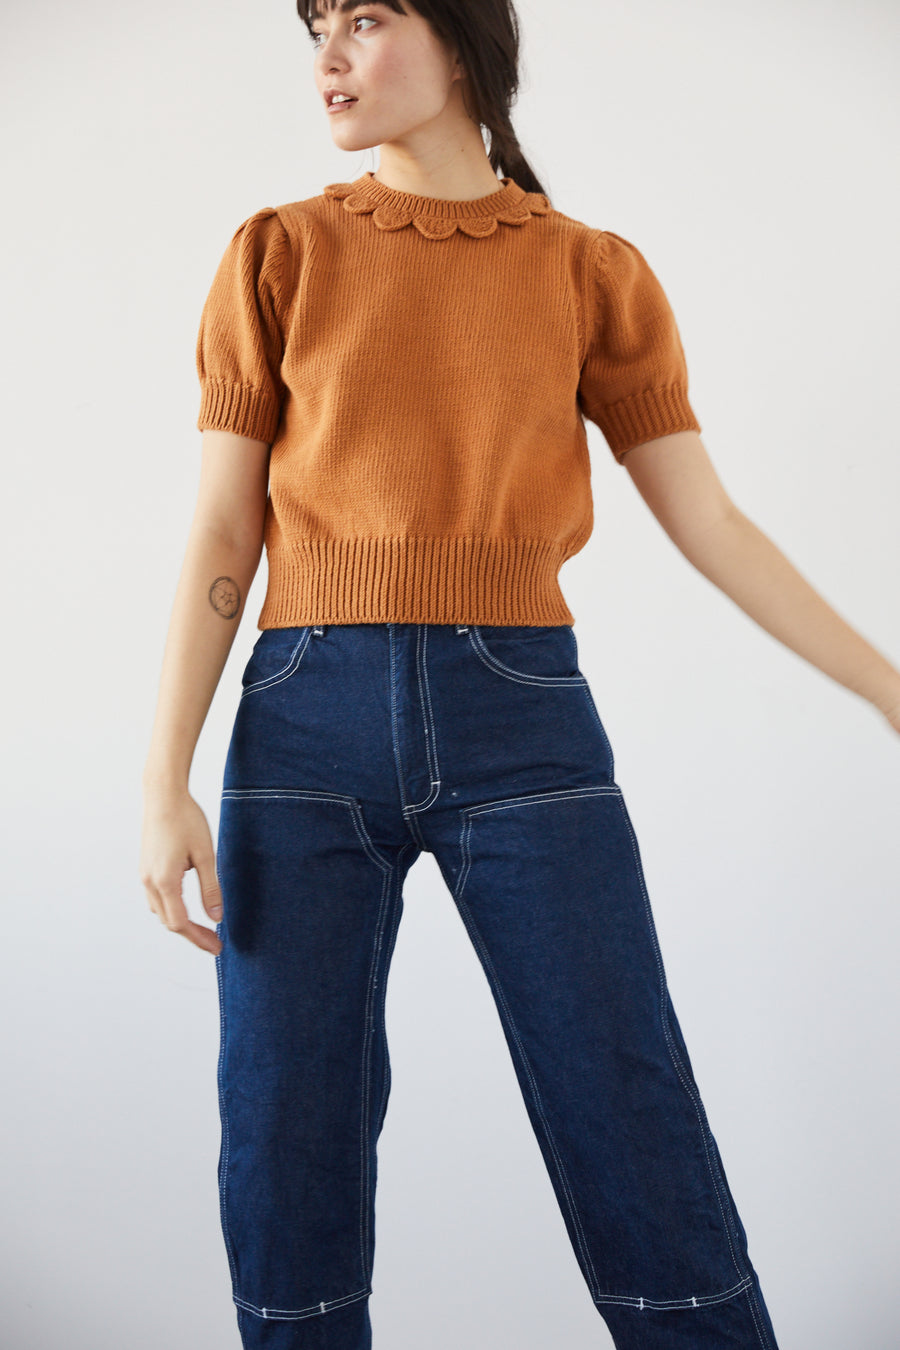 Adult Ellie Short Sleeve Pullover - Caramel